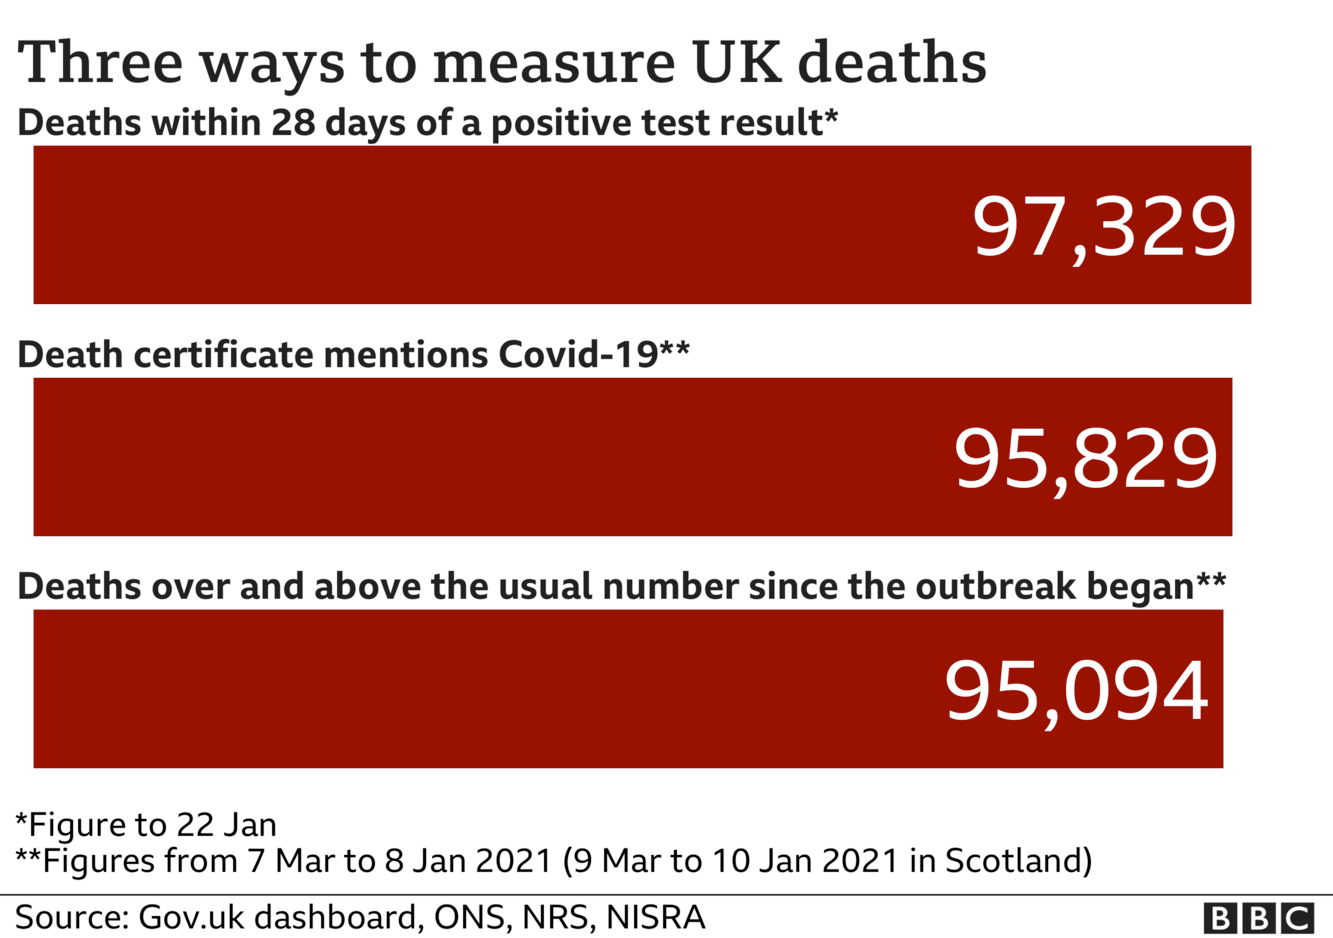 Chart showing three different totals for coronavirus deaths - the government measures all deaths within 28 days of a positive test, that total is 97,329. The ONS includes all deaths where coronavirus was mentioned on the death certificate, that total is 95,829 and the final total includes all deaths over and above the average for the time of year and that total is now 95,094